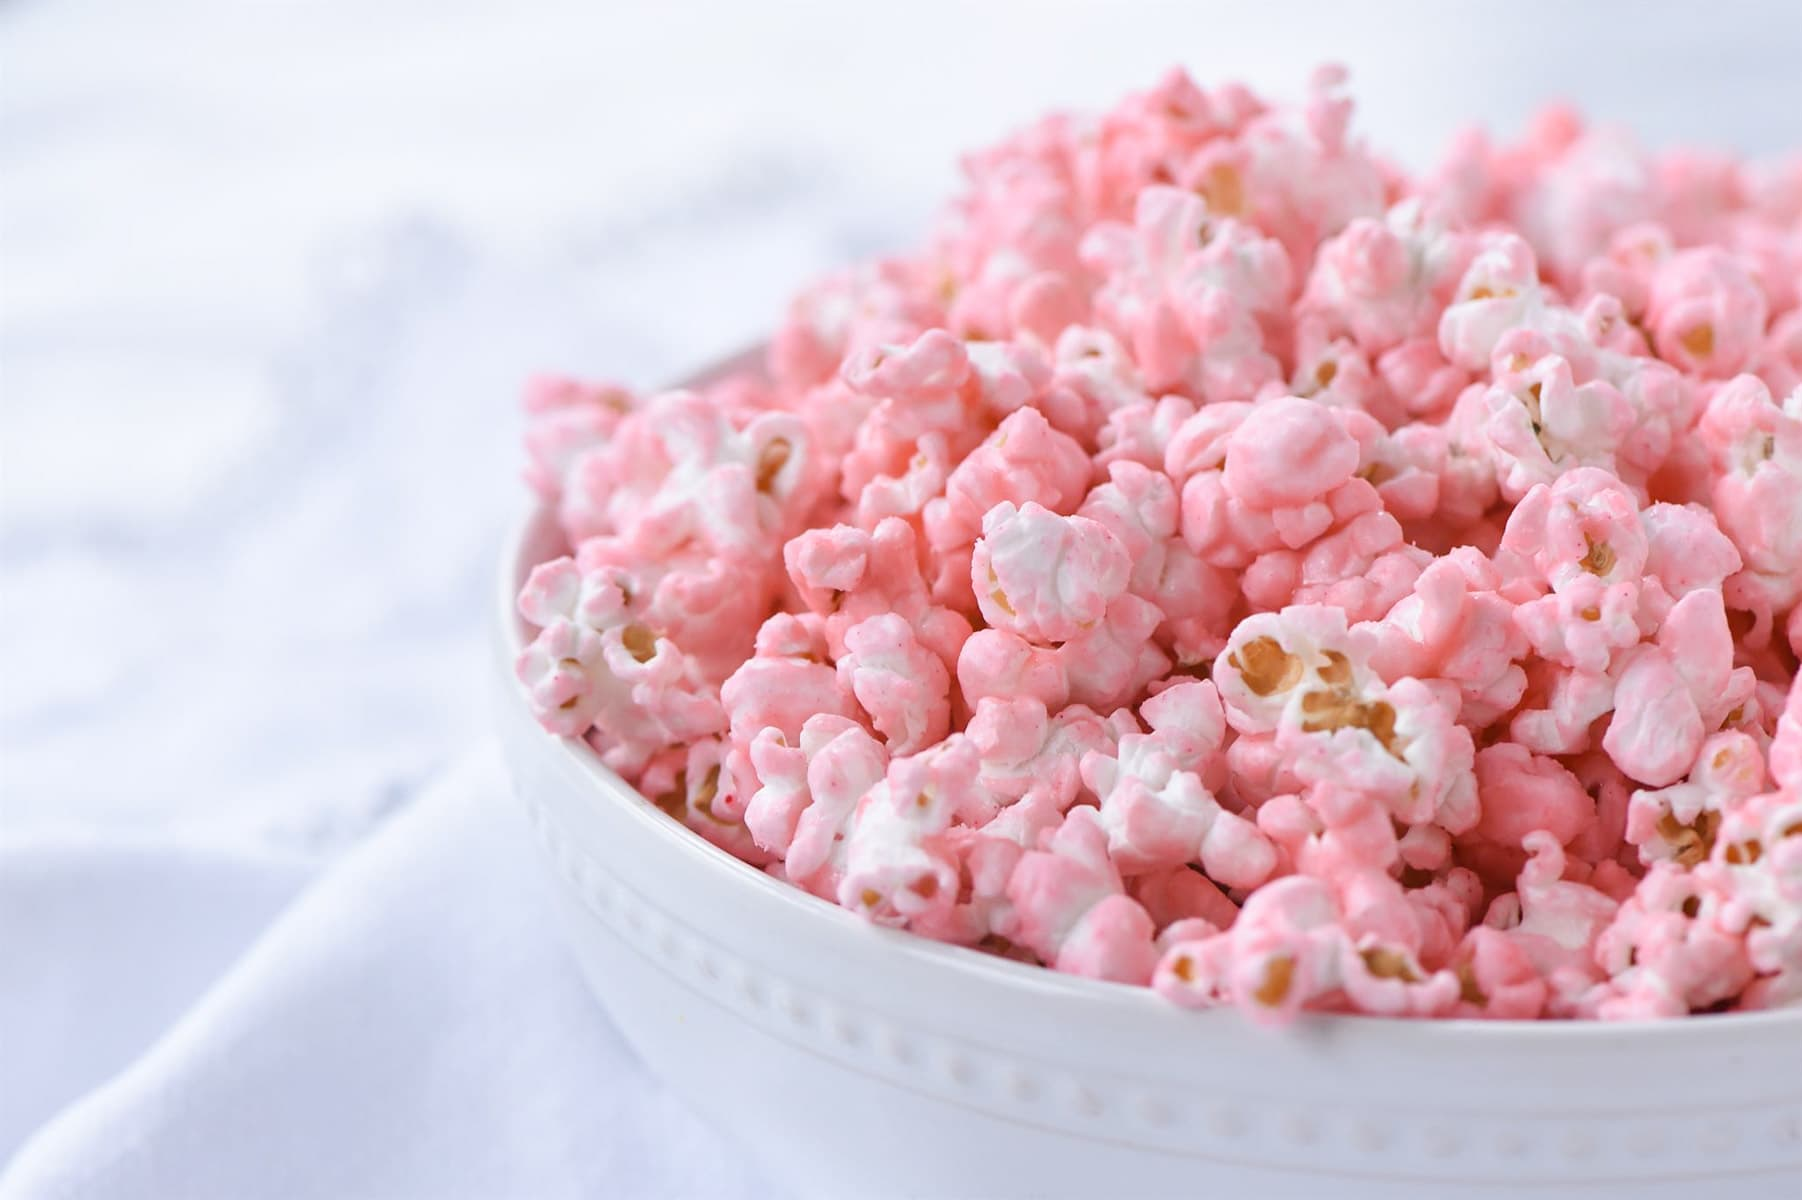 side view of a bowl of pink popcorn